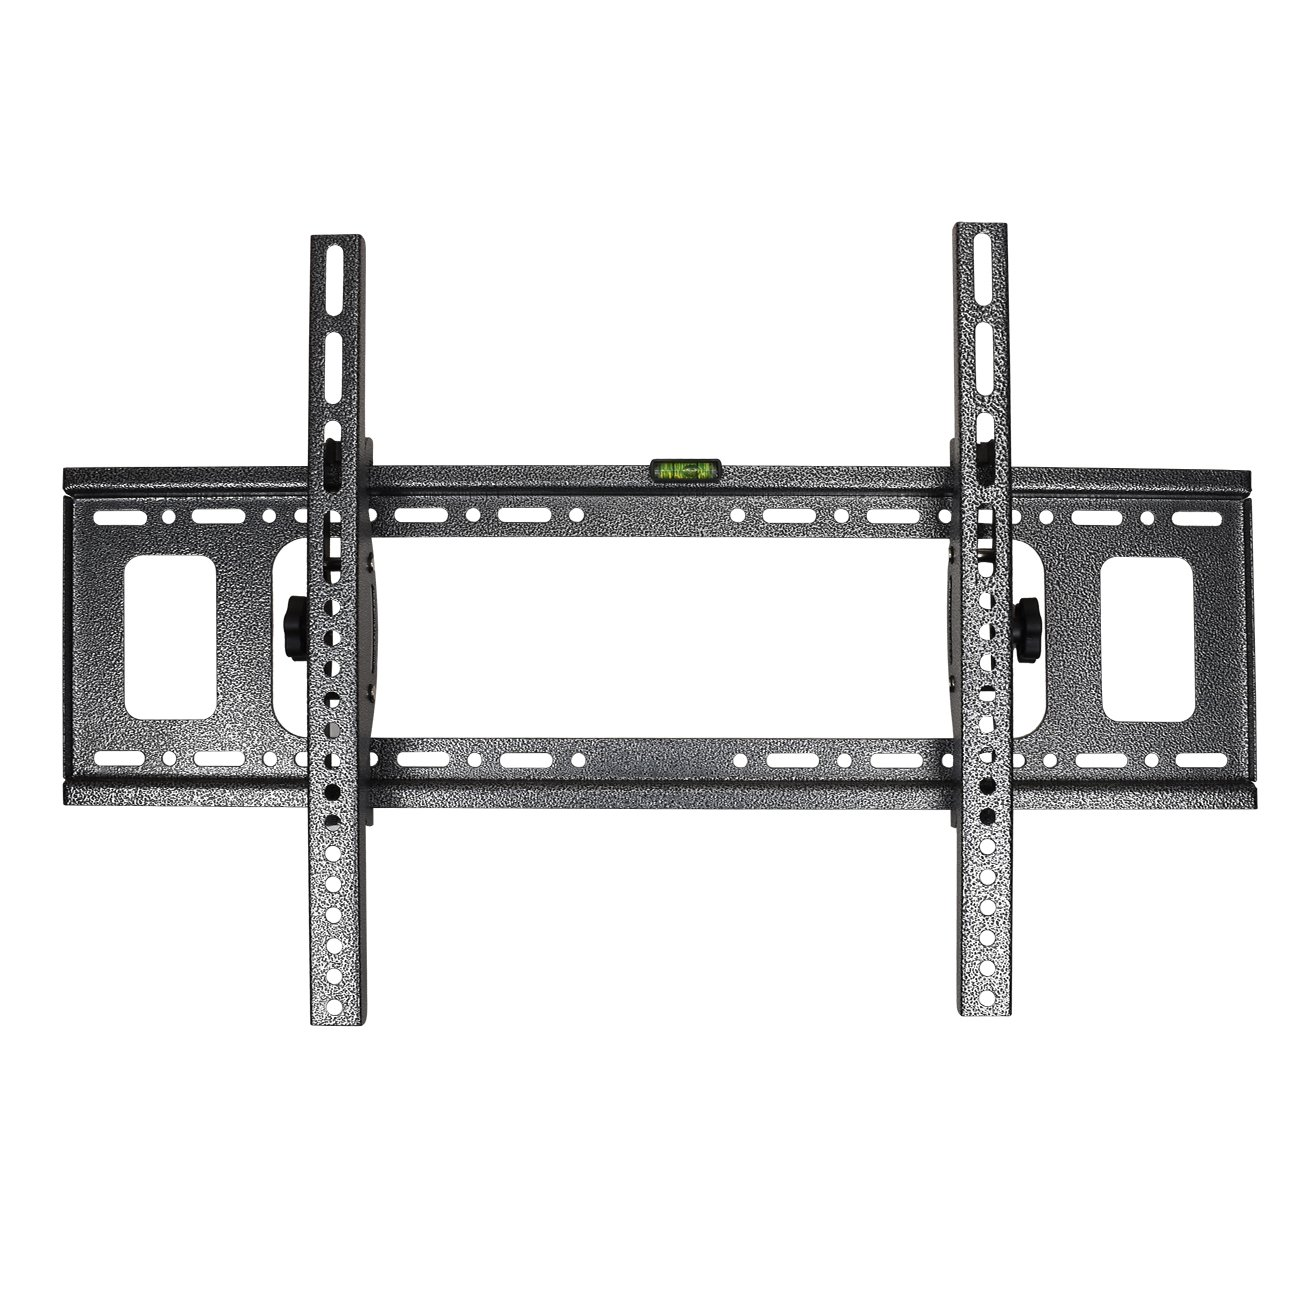 TV Wall Mount Bracket,- Universal Heavy-Duty Tilt Wall Mount Bracket for 32'' - 70'' Samsung, Sony, LG,LCD, LED and Plasma Flat Screen TVs with Bubble Level